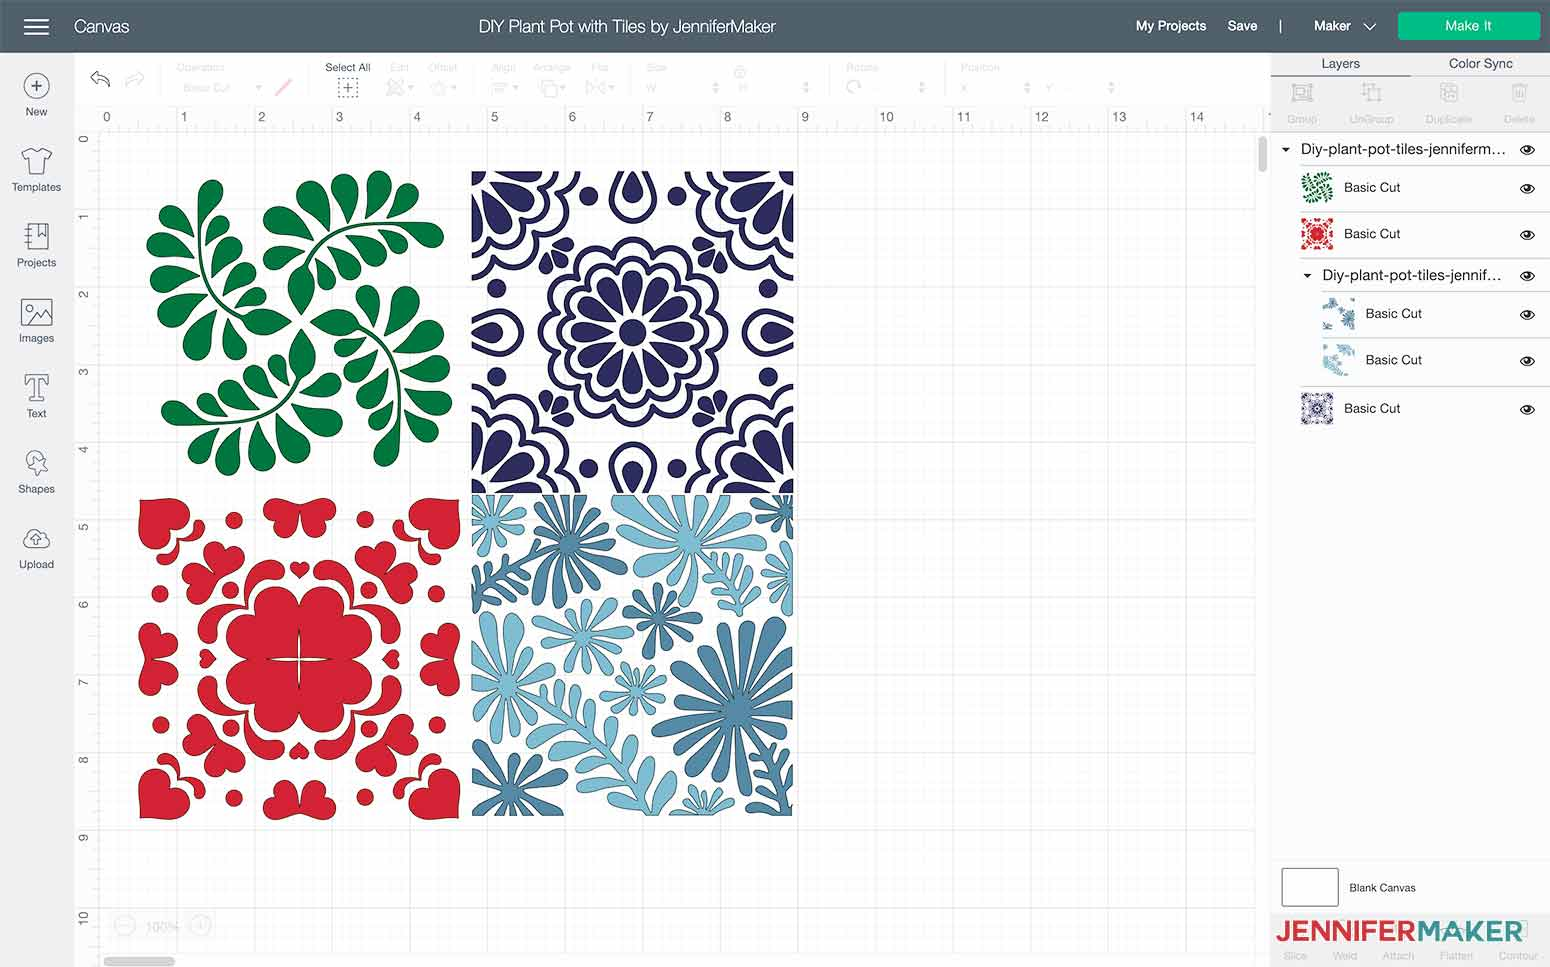 This is what my DIY plant pot with tiles looks like in Cricut Design Space